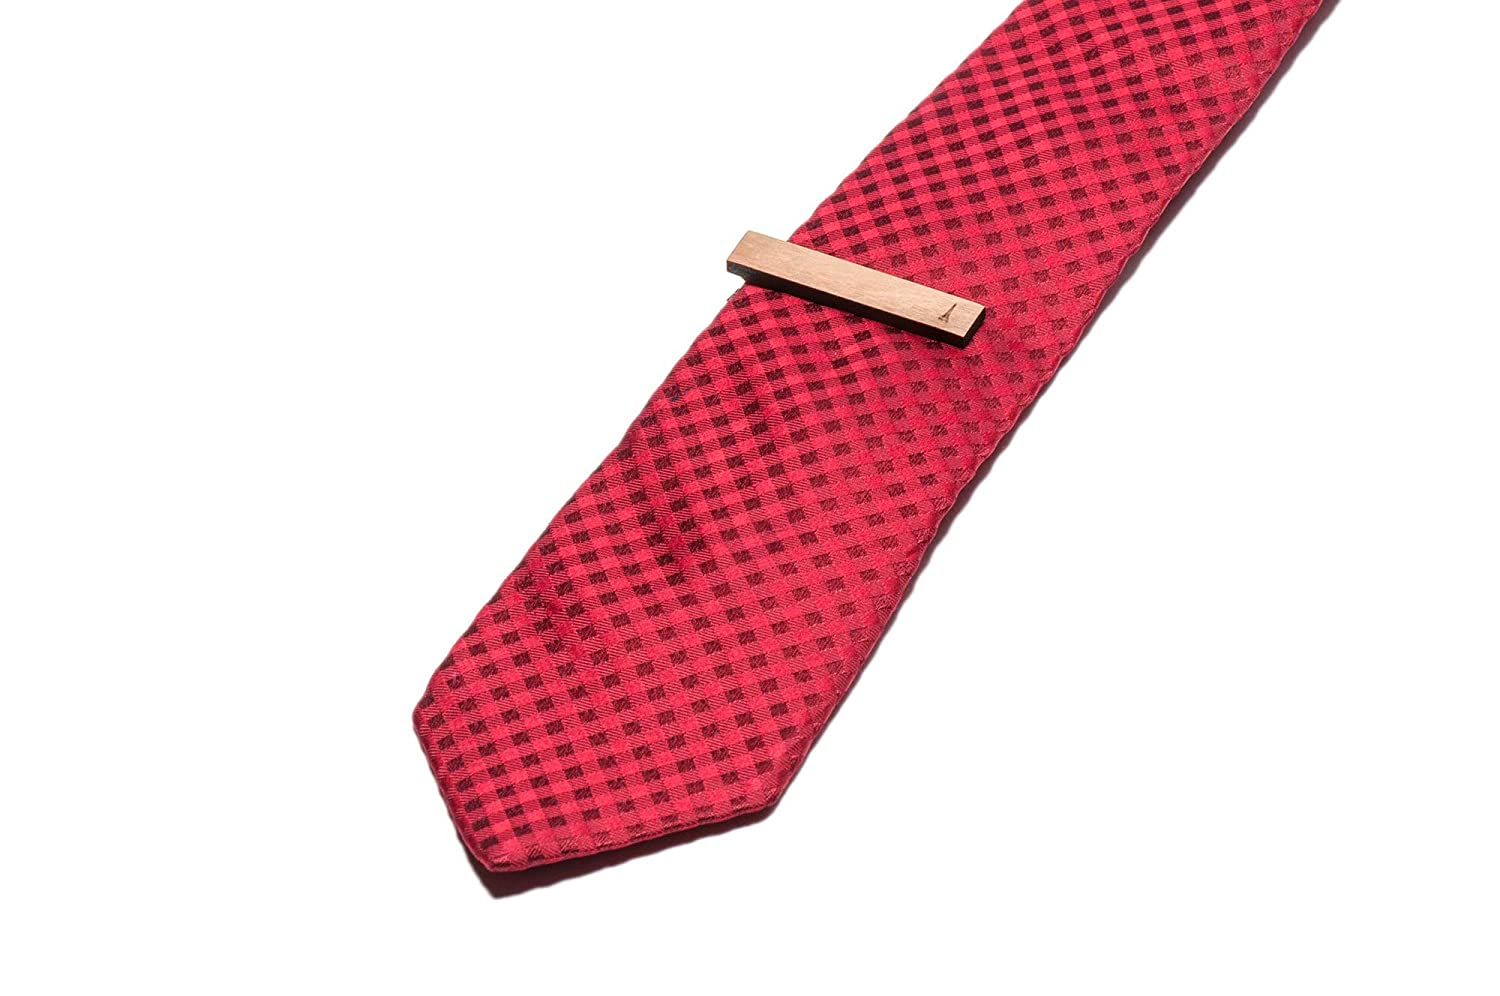 Cherry Wood Tie Bar Engraved in The USA Wooden Accessories Company Wooden Tie Clips with Laser Engraved Paris Design